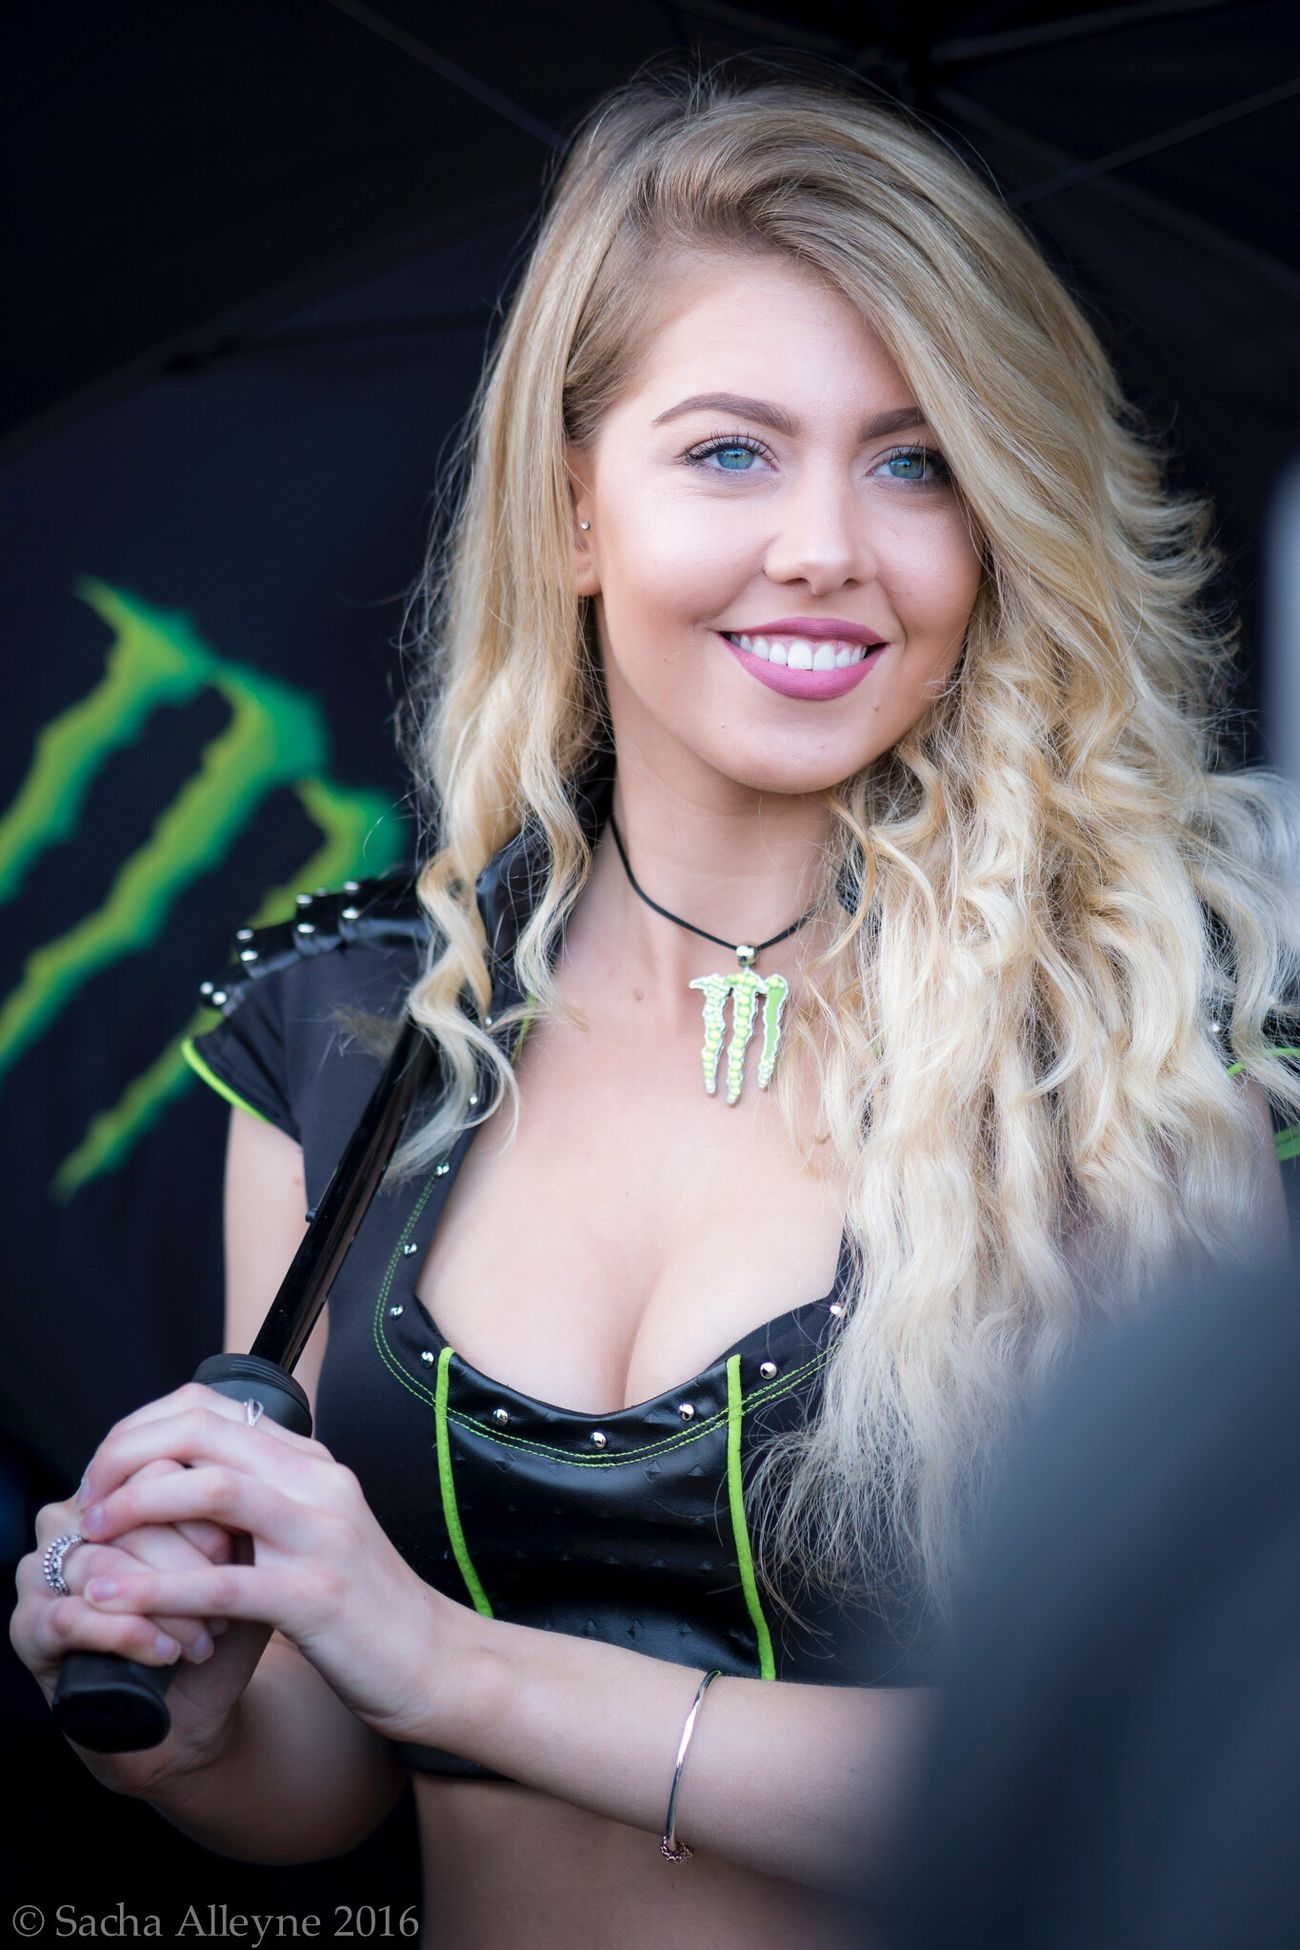 Monster Energy grid girl Blond Hair Portrait One Person Beautiful Woman Smiling Model Young Women Promo Model Promomodels Day Grid Girl Outdoors Beautiful Britishsuperbikes Pitlane Gridgirls Cheerful